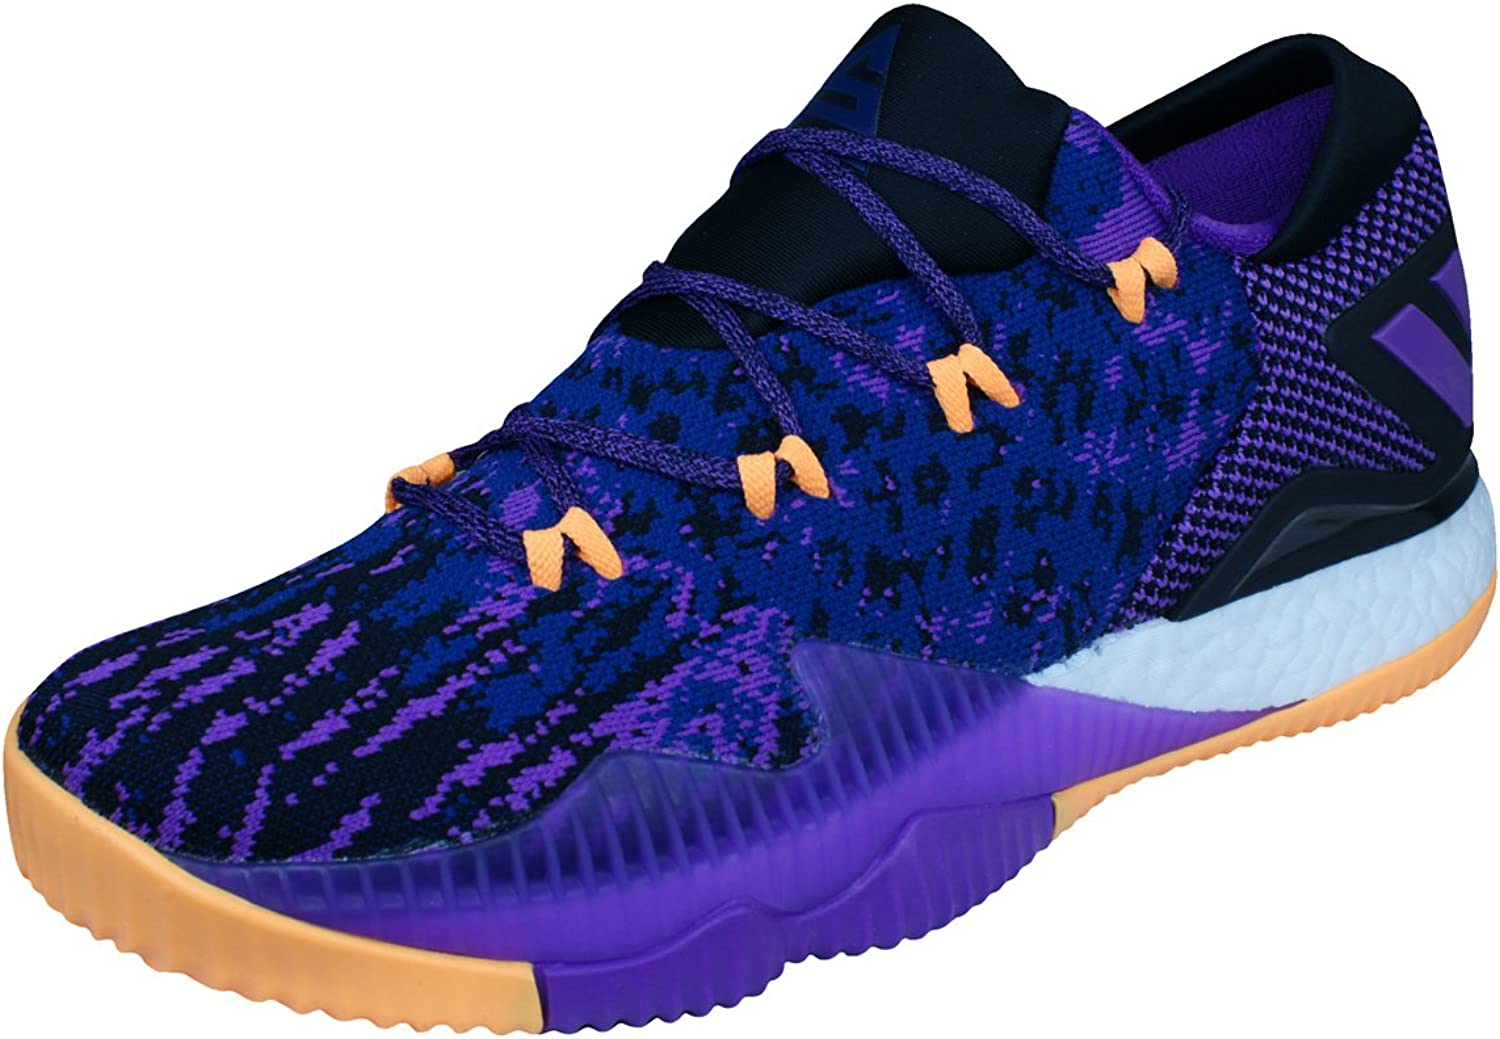 Adidas Crazylight Boost Low 2016 Primeknit Mens Basketball Trainers shoes